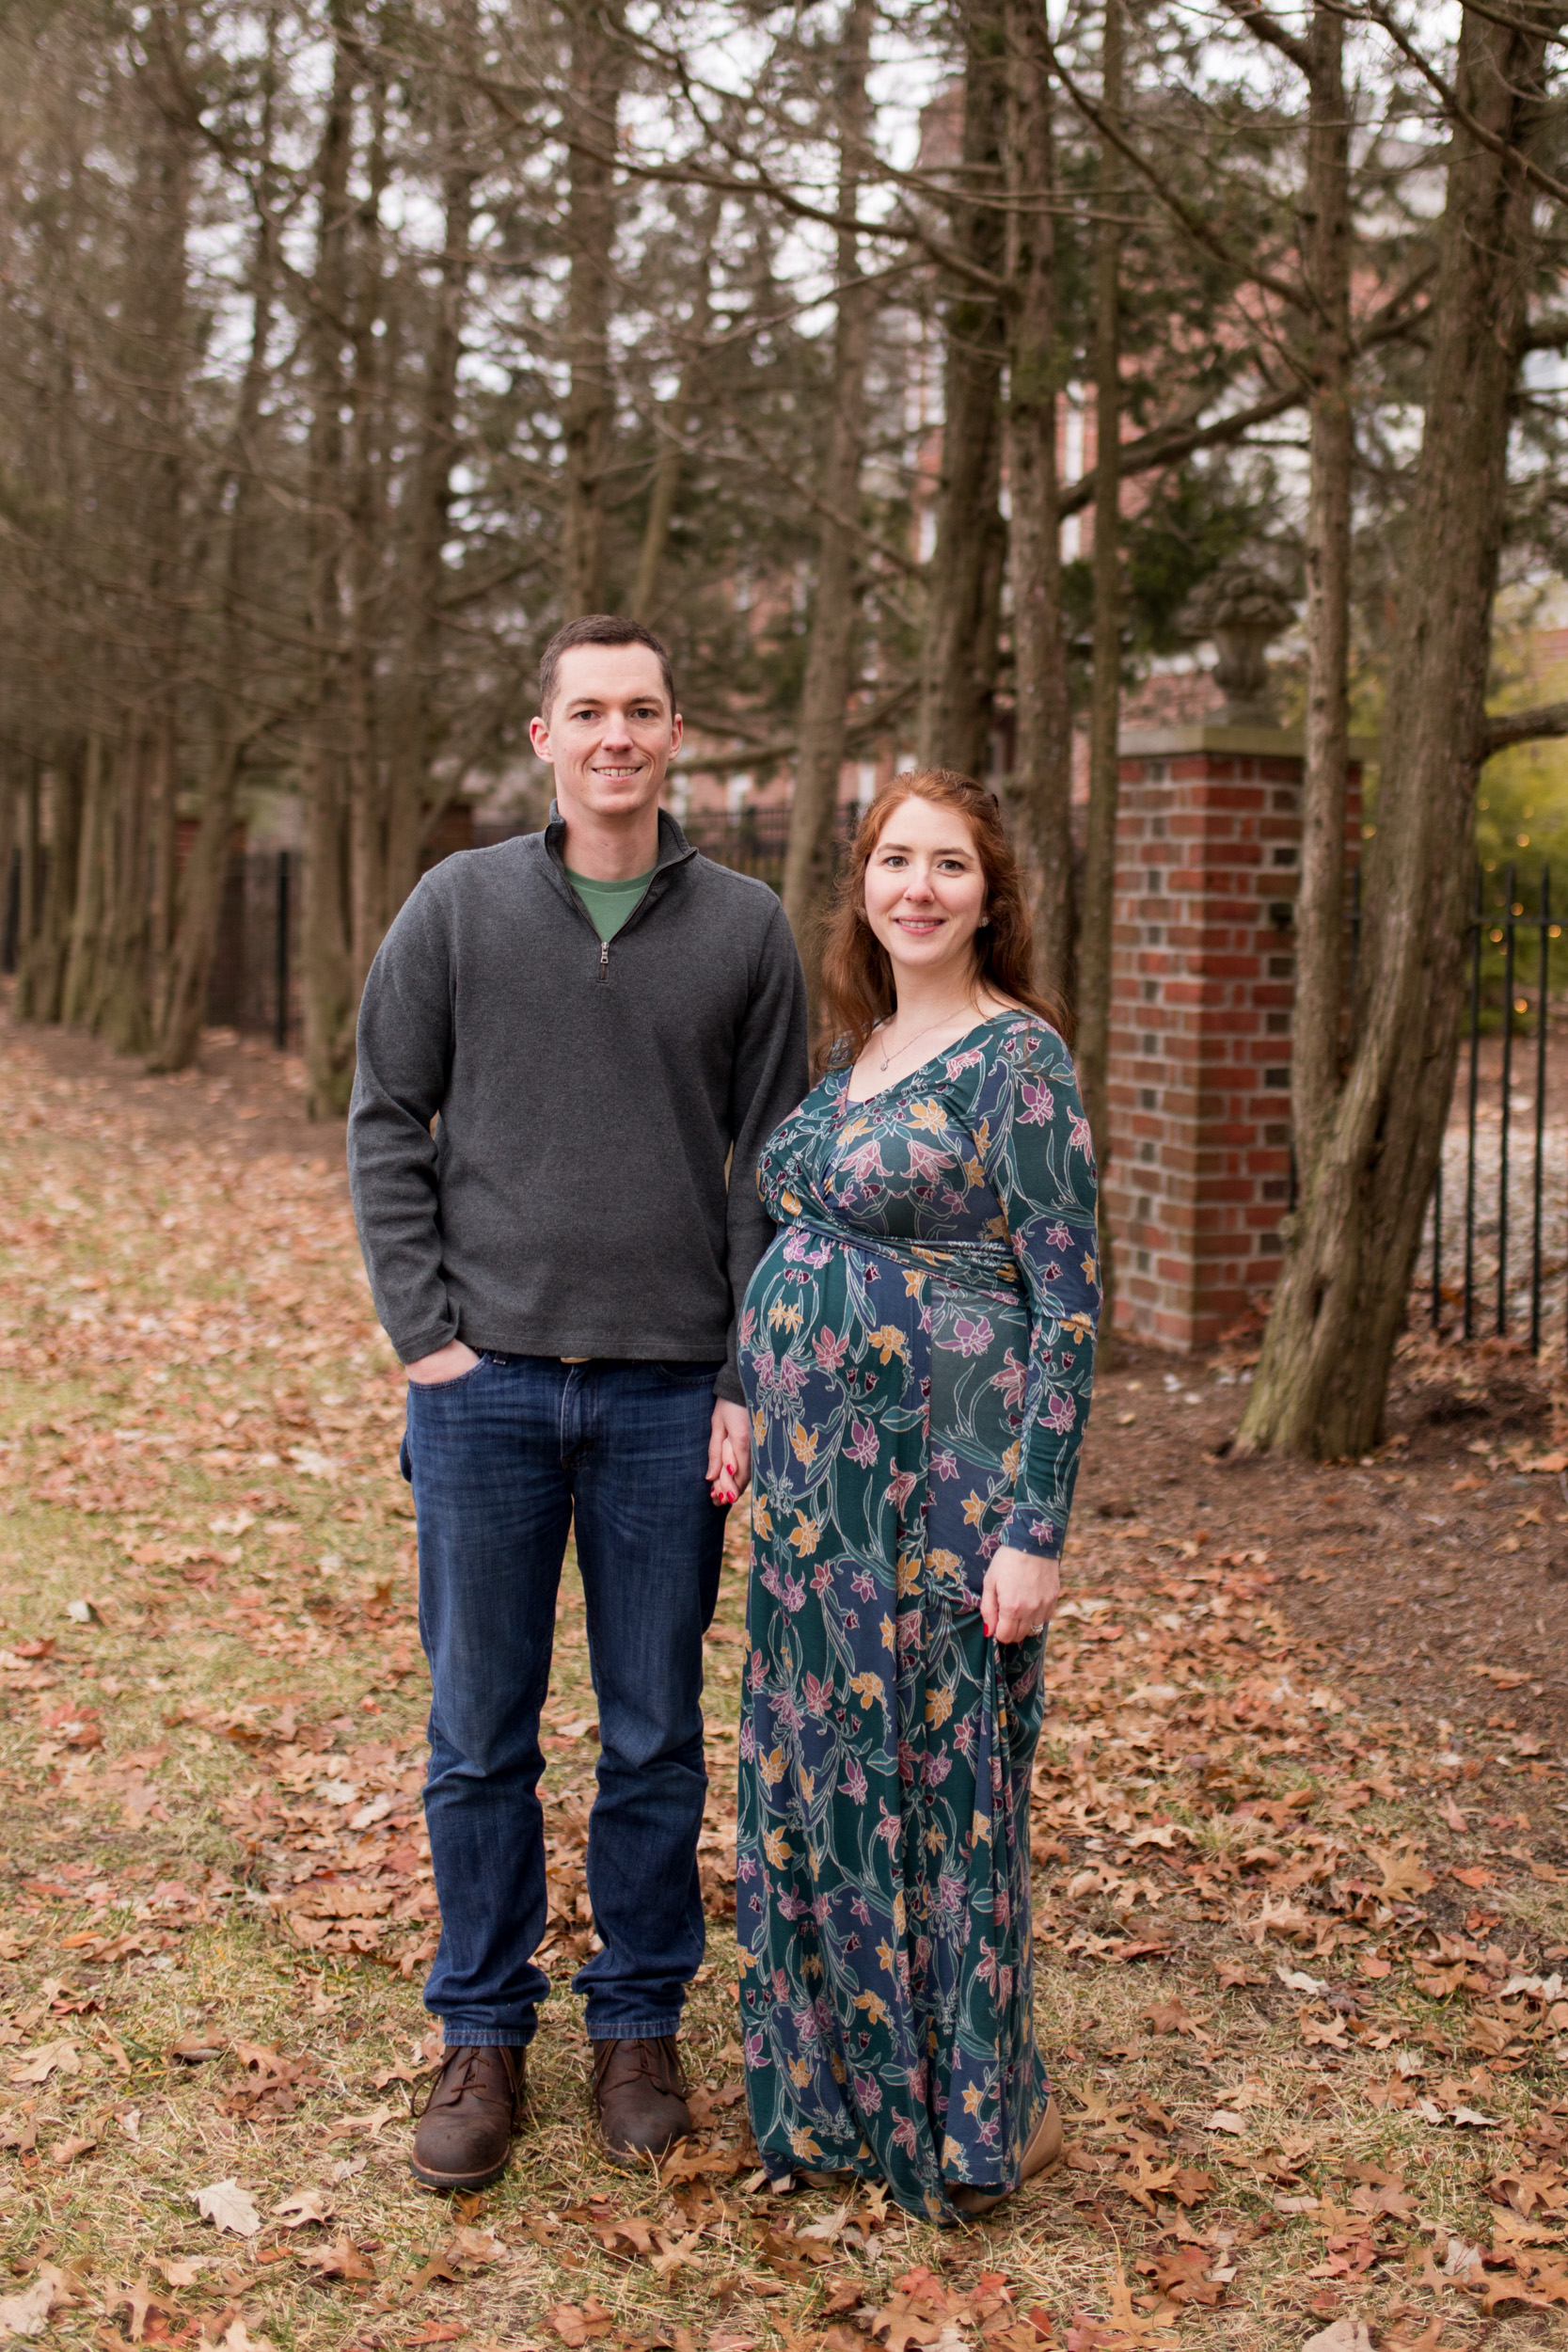 maternity session at Coxhall Gardens in Carmel